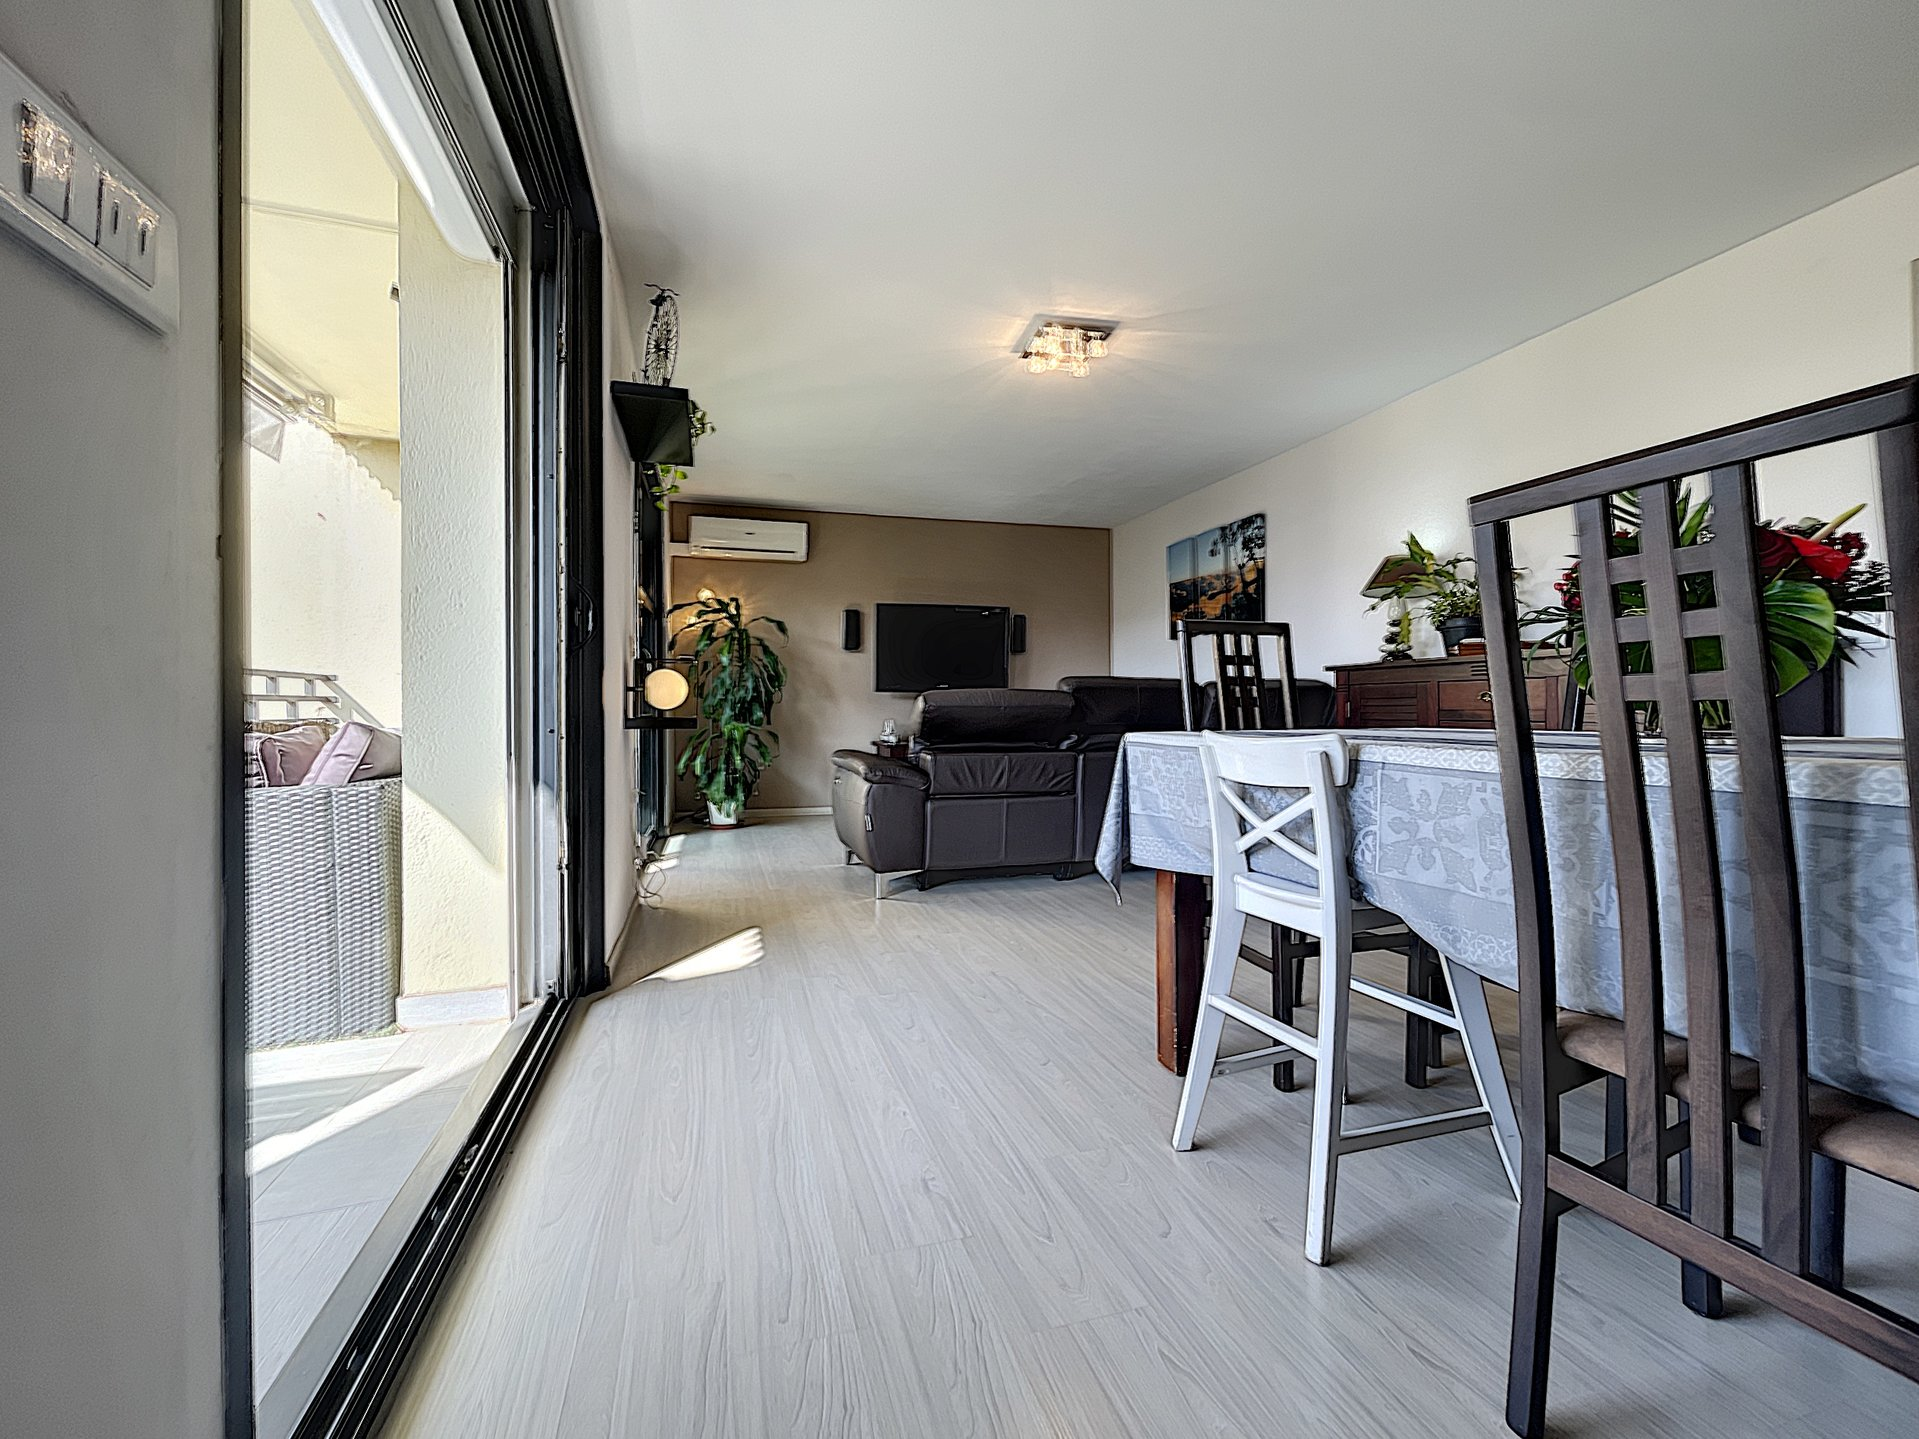 Sale Apartment - Perpignan Massilia